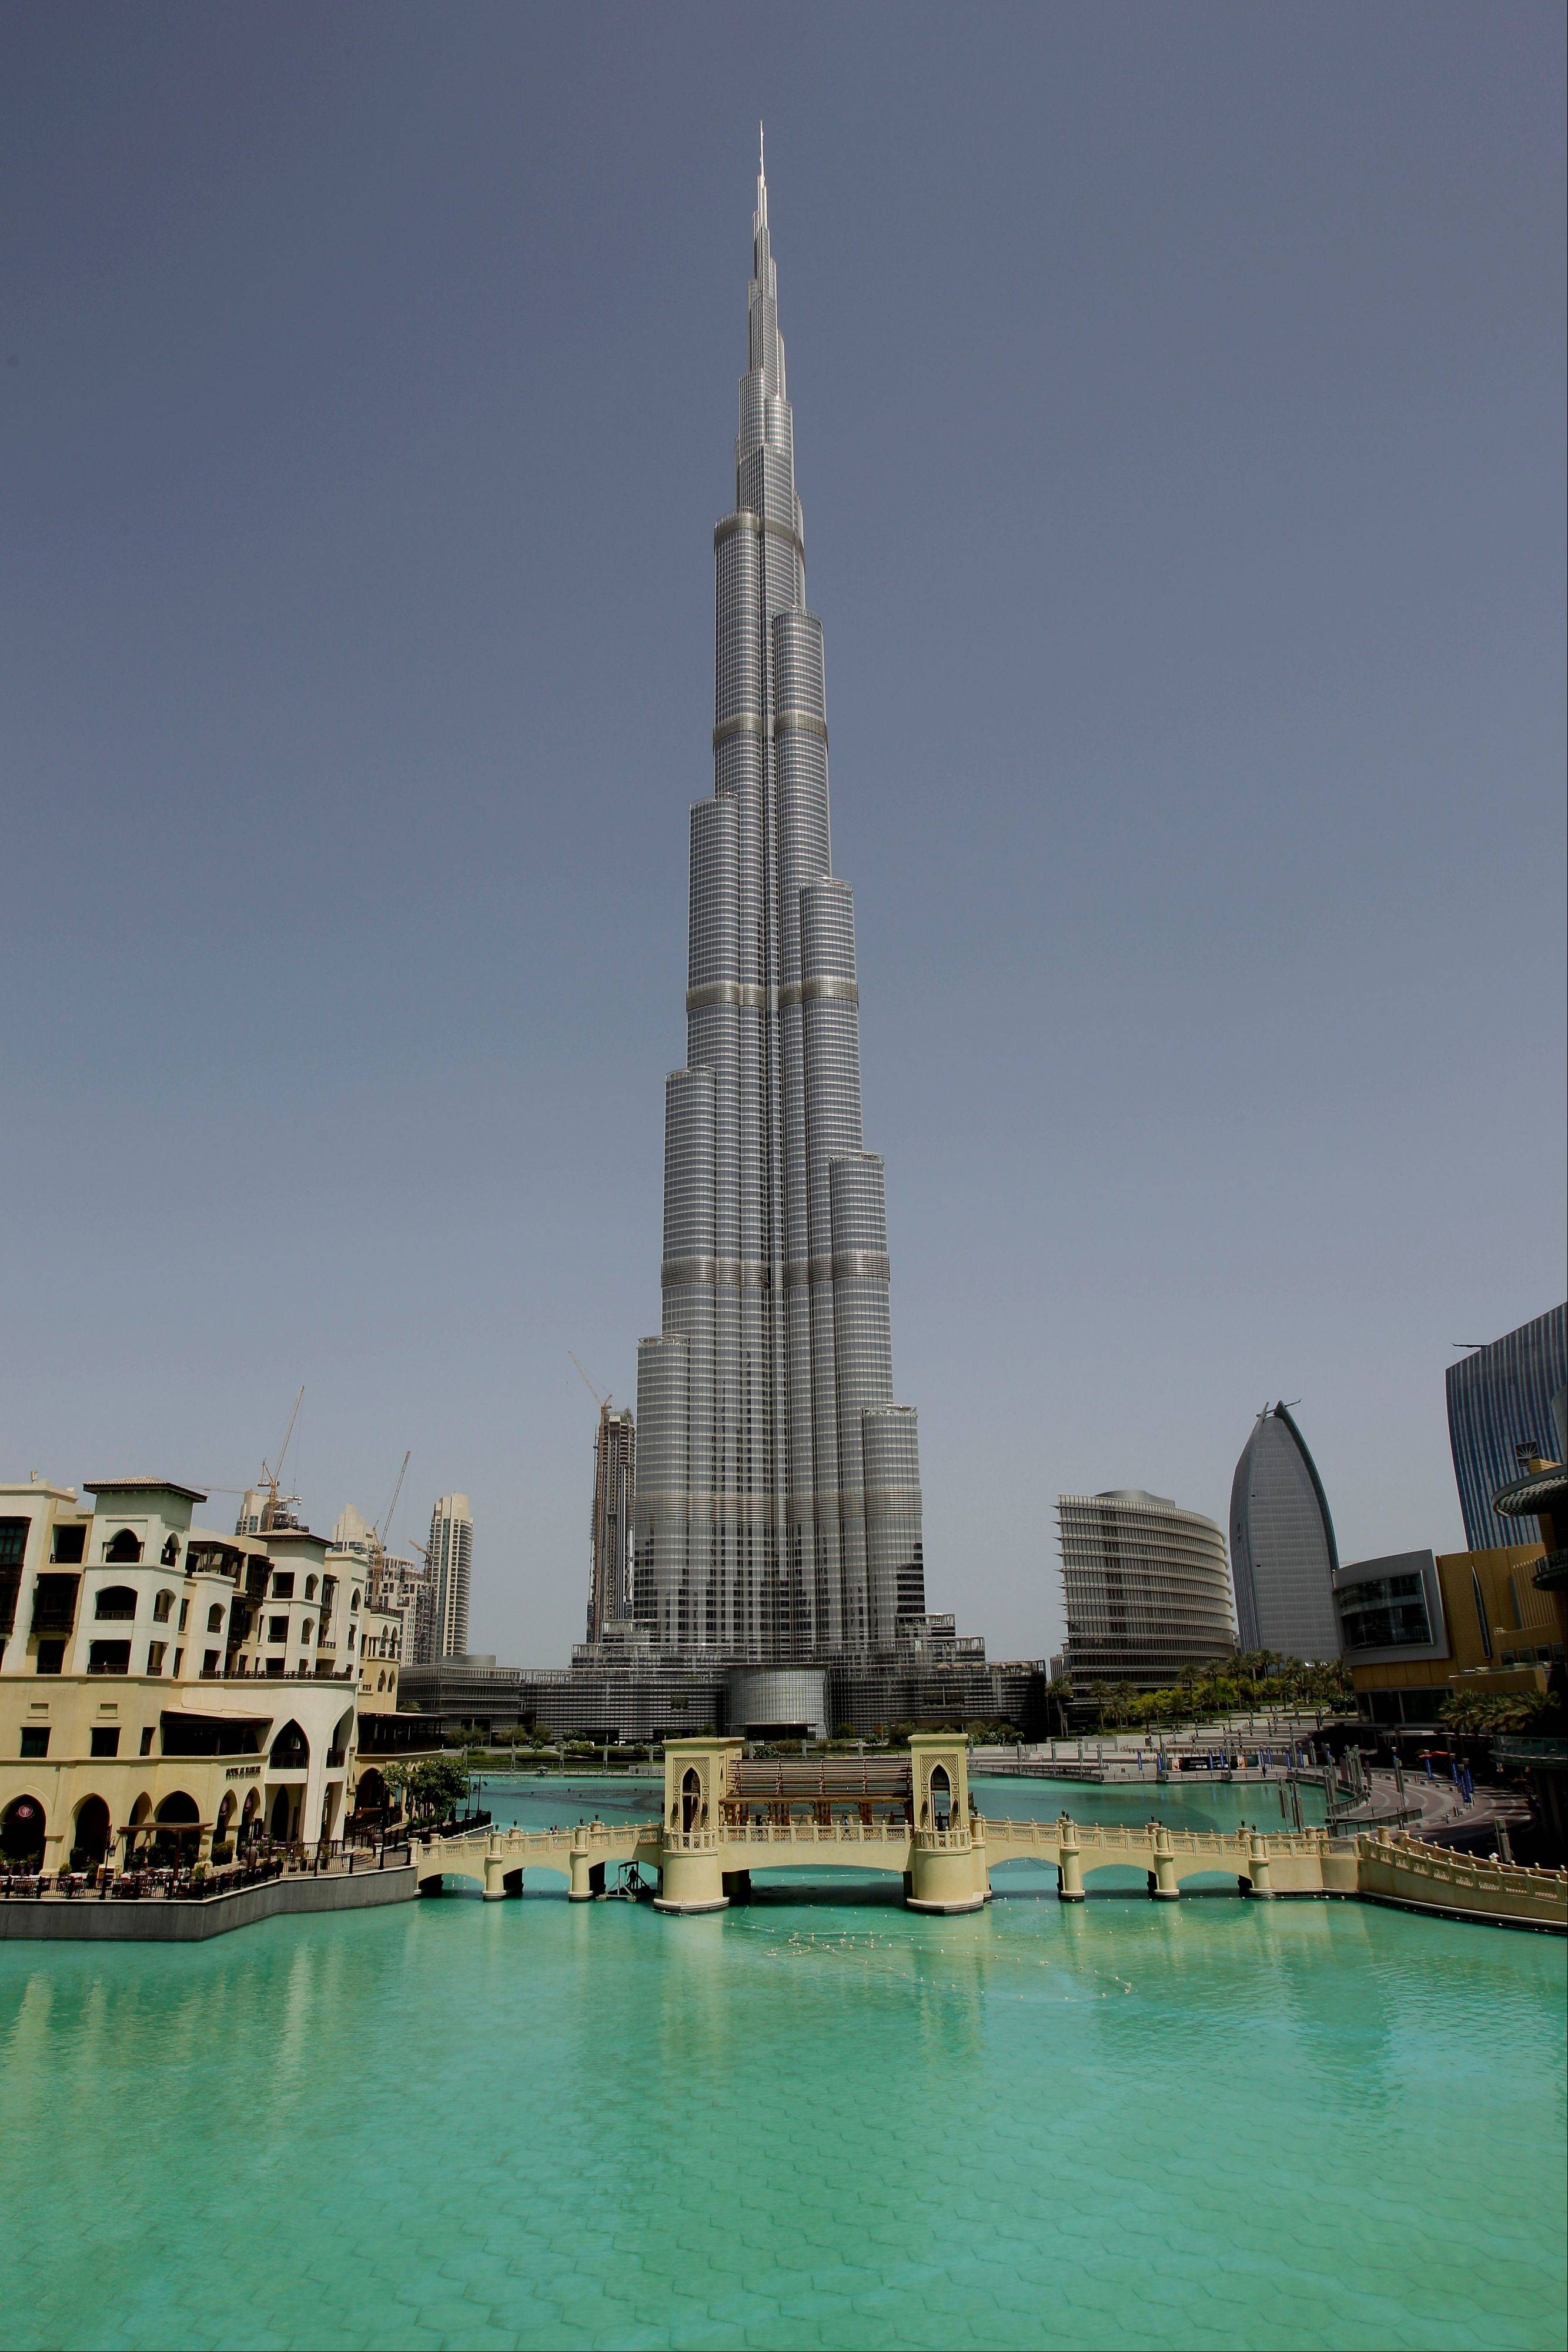 The world's tallest building, Burj Khalifain, is a popular attraction in Dubai.